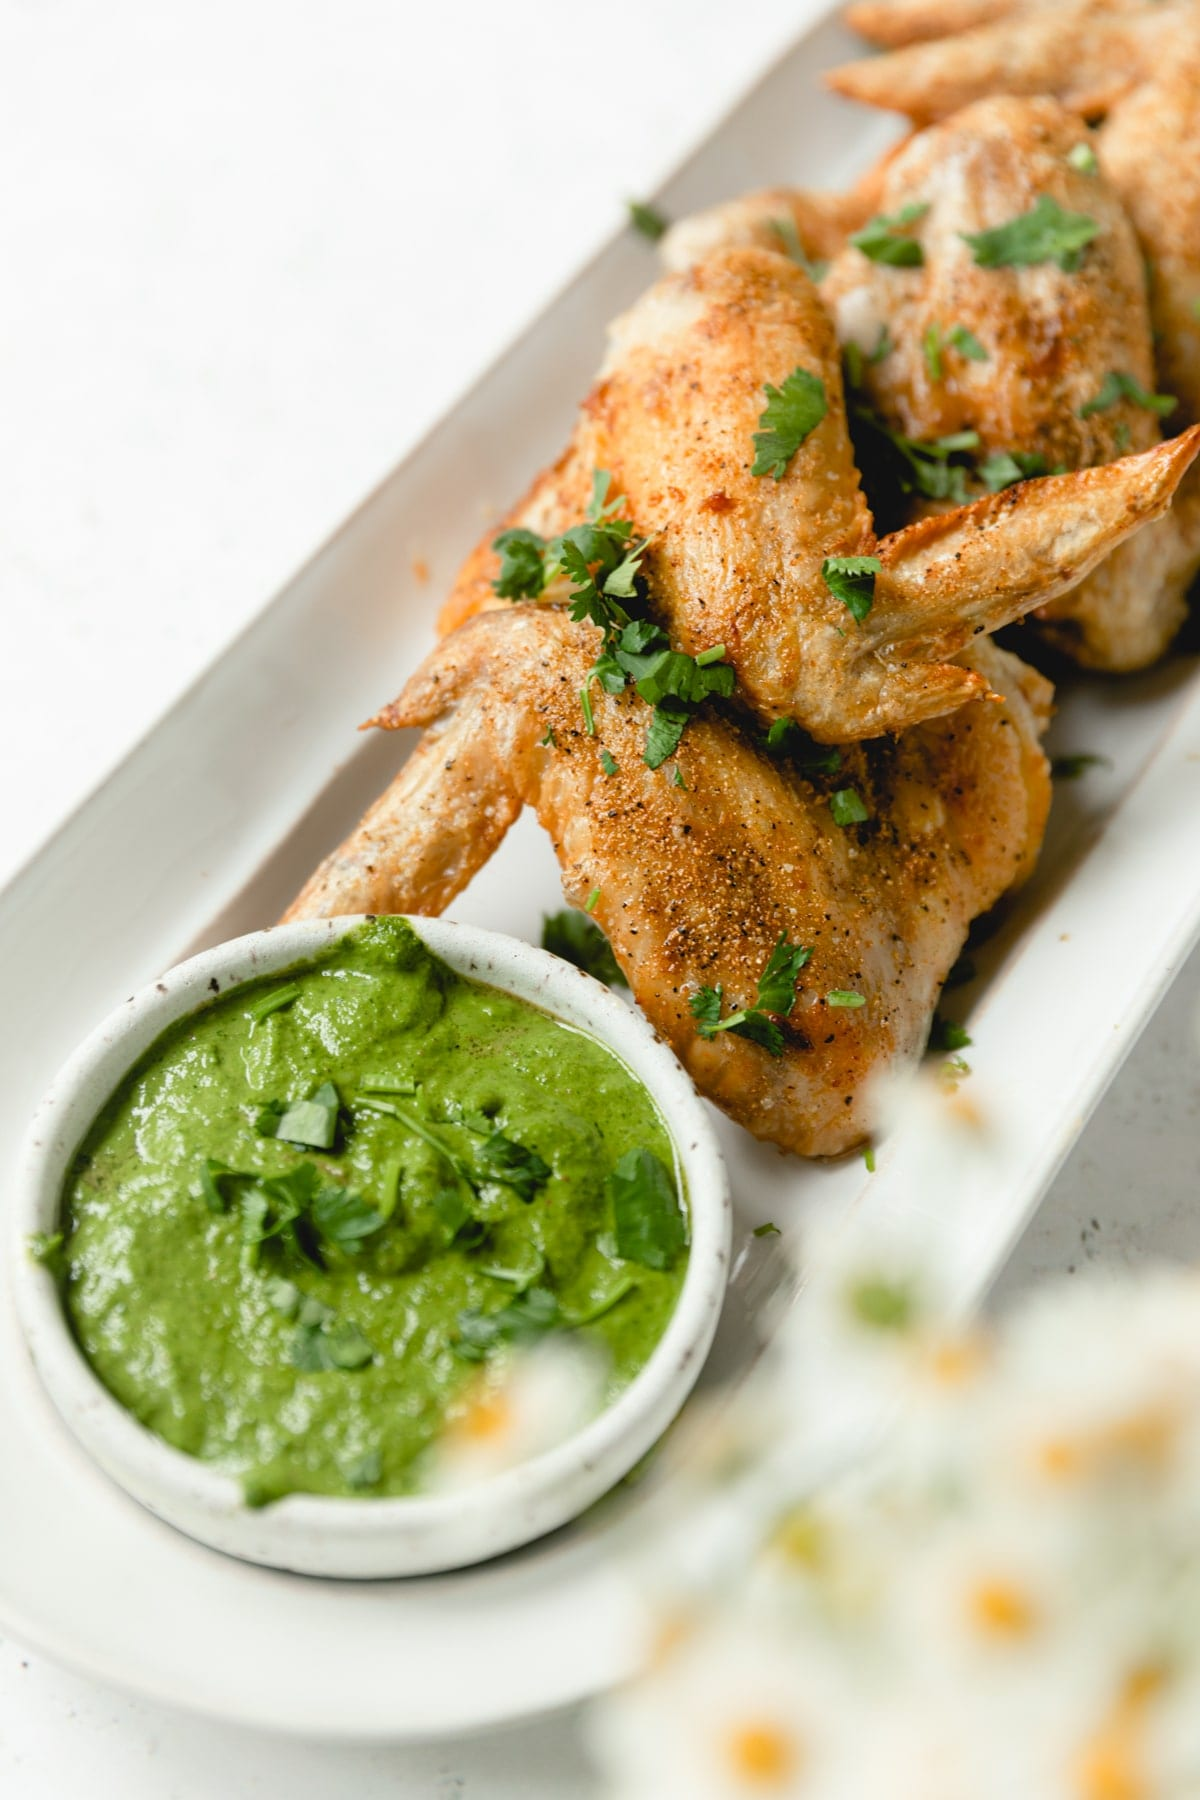 Crispy air fried wings on a white plate with chimmichurri sauce